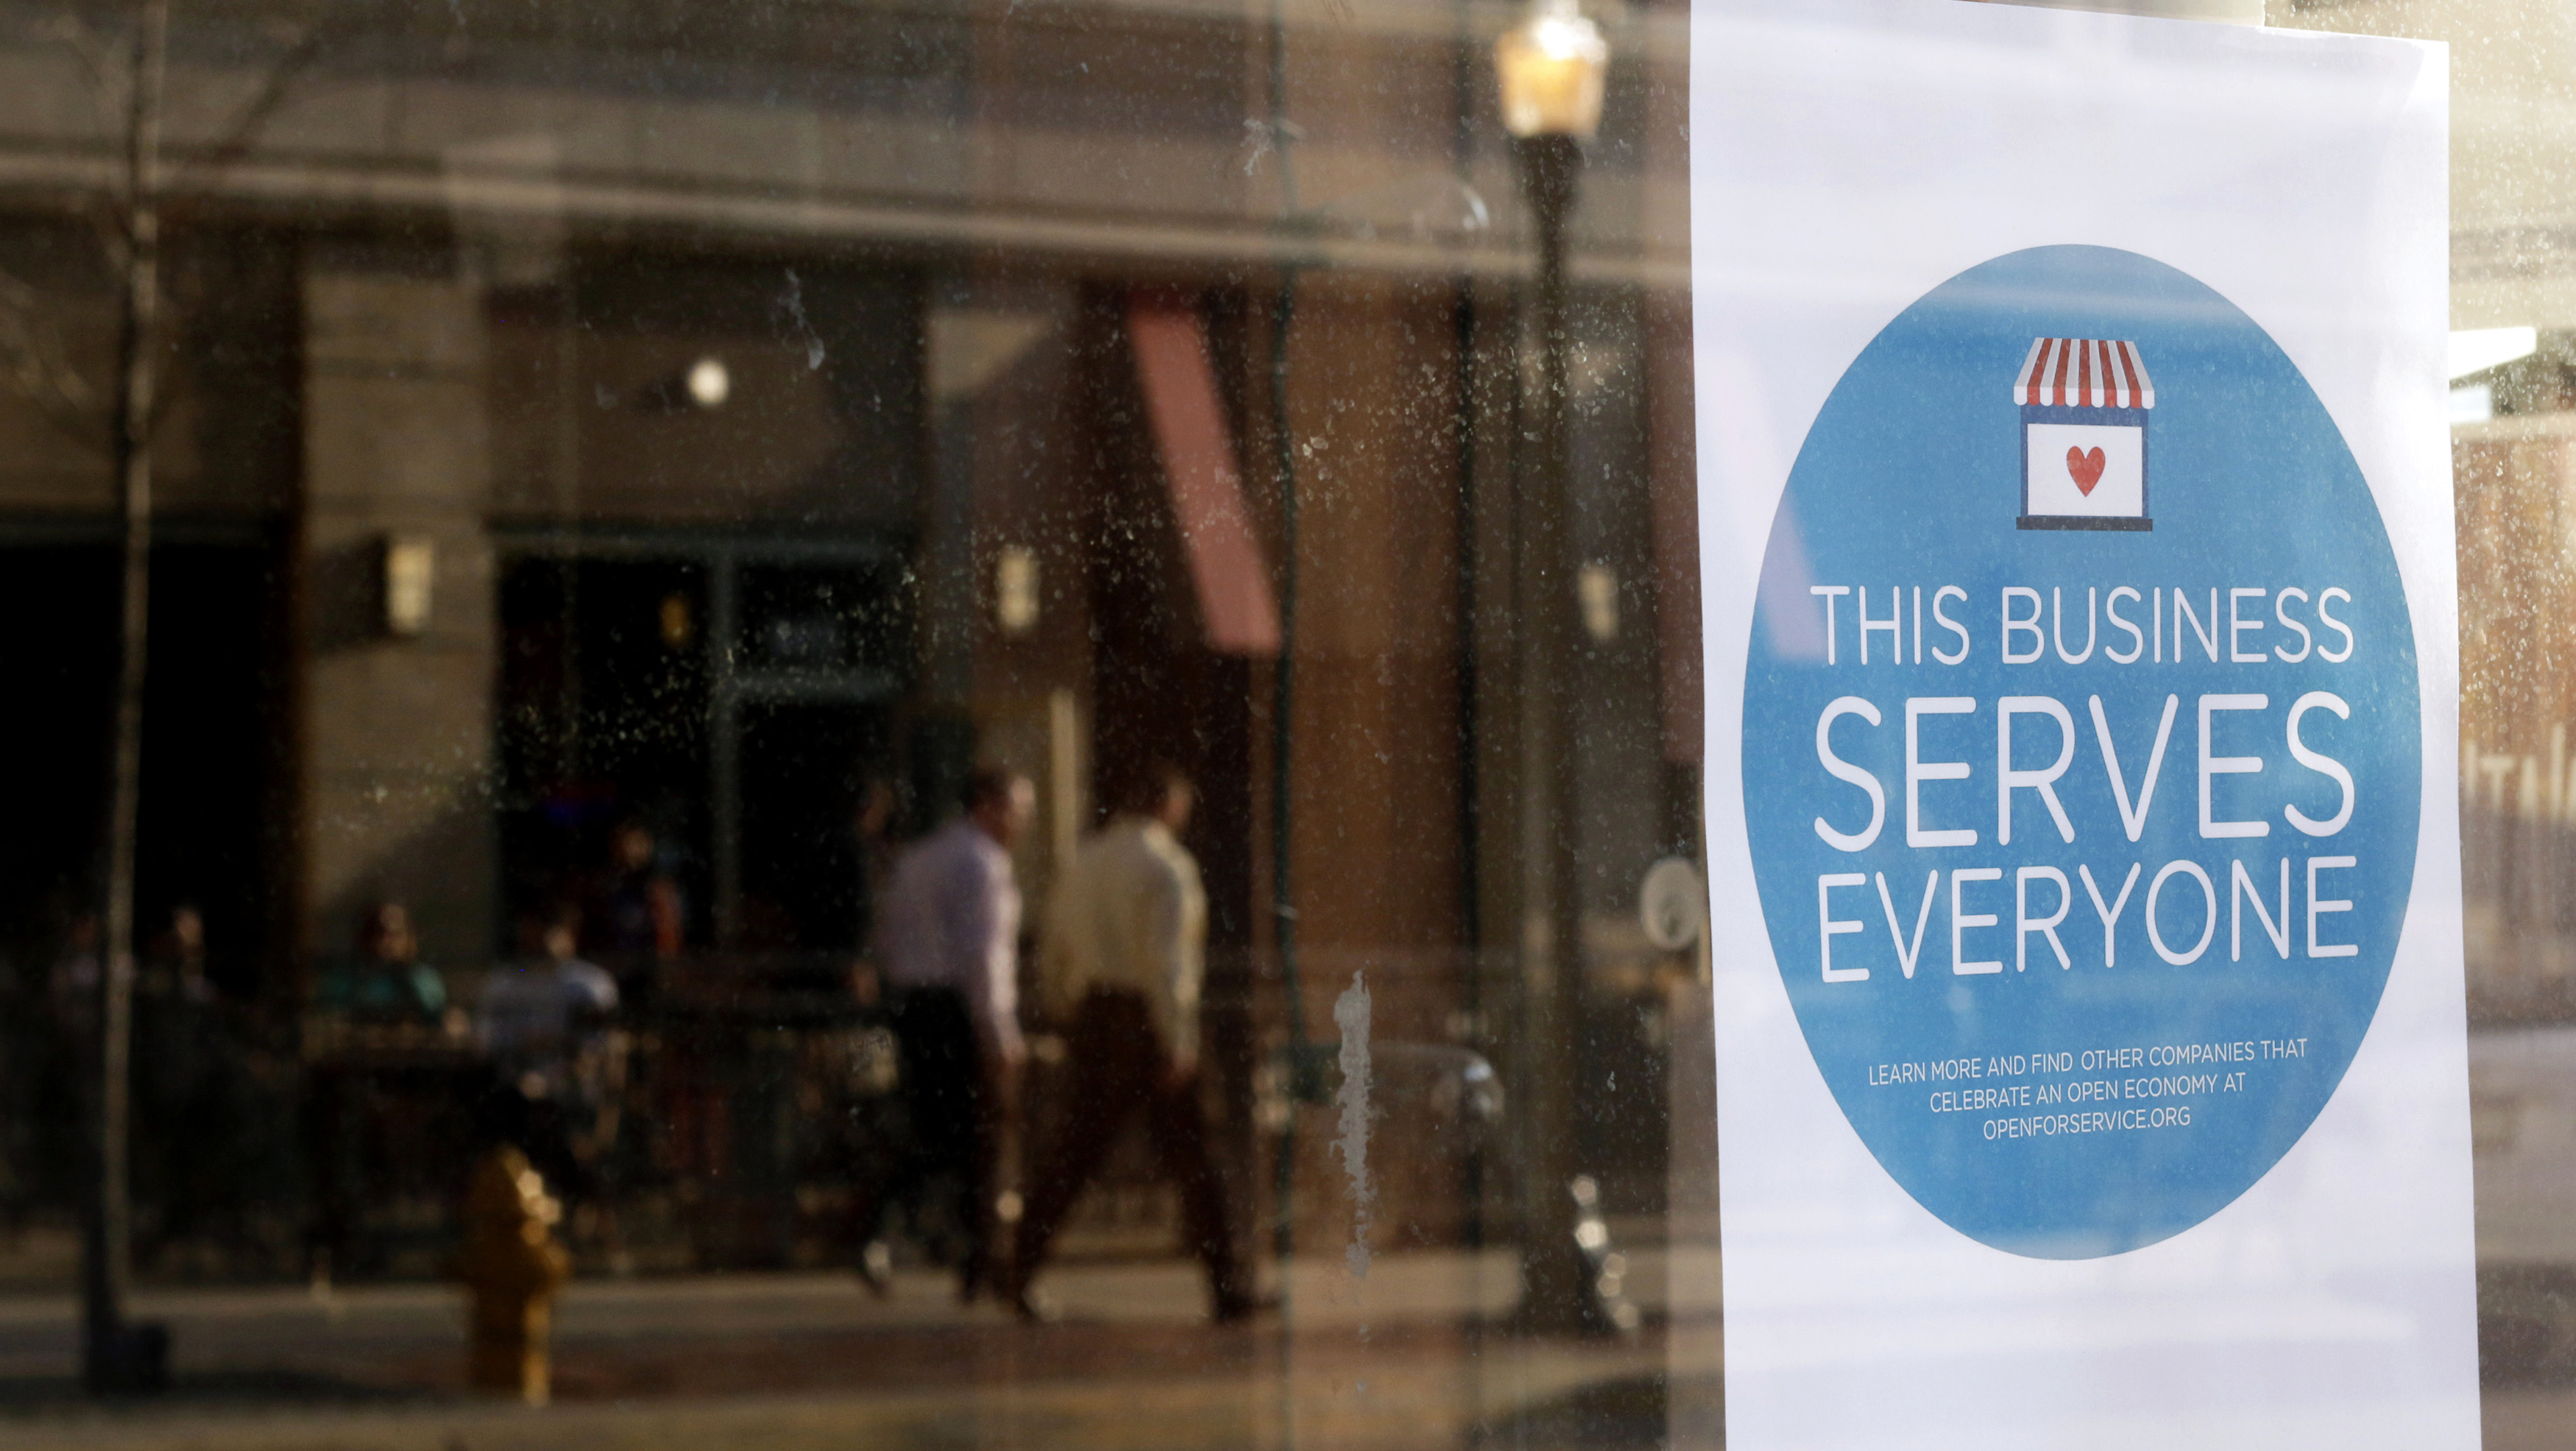 """A sign reading """"This business serves everyone"""" is placed in the window of Bernadette's Barbershop in downtown Lafayette, Indiana March 31, 2015. The store is one of several who display a sticker stating """"This business serves everyone."""""""